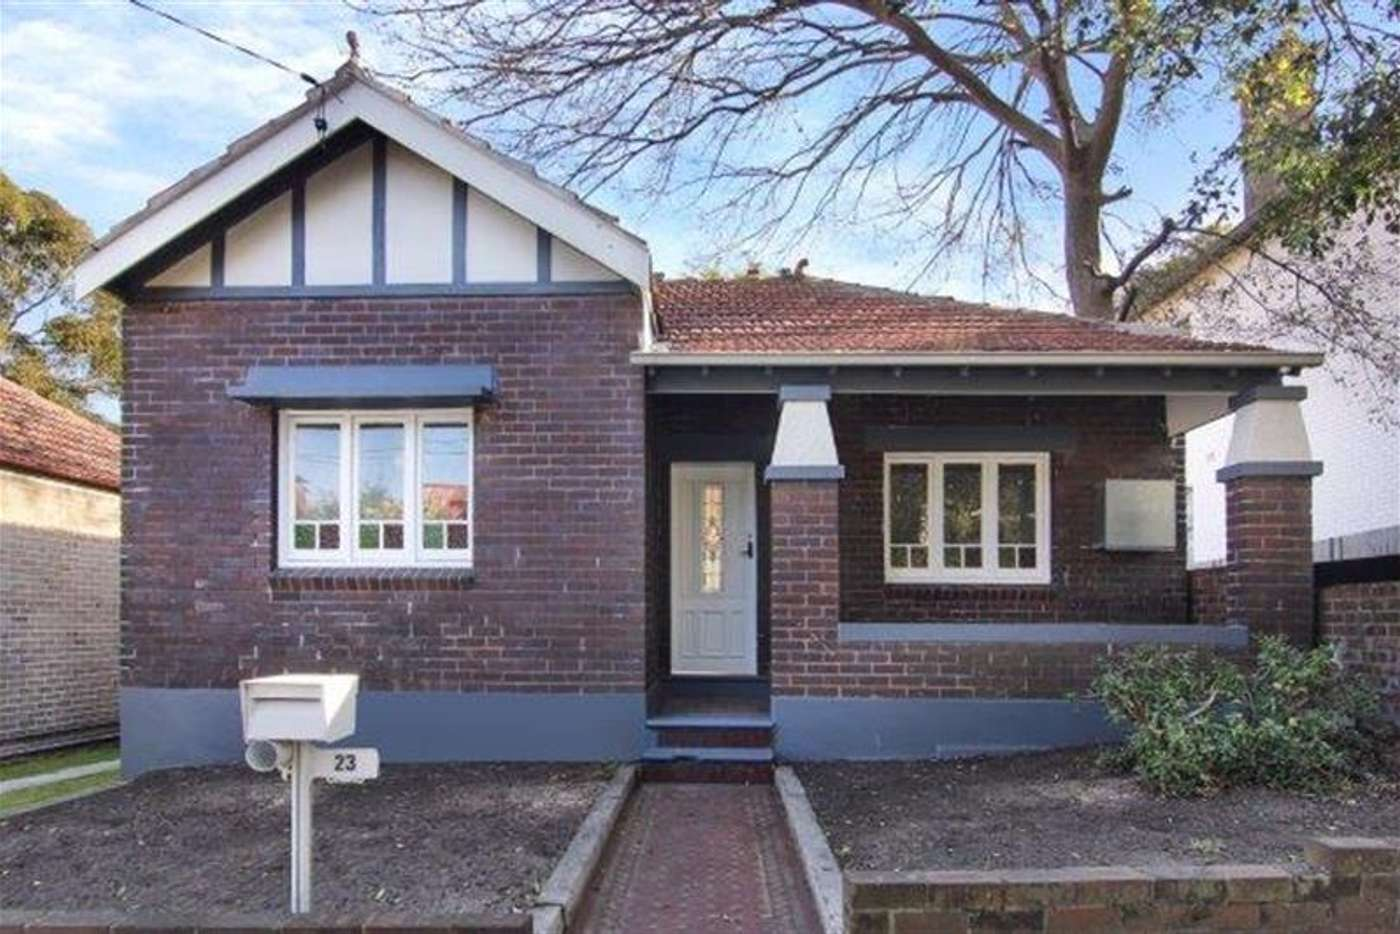 Main view of Homely house listing, 23 Gordon Street, Rozelle NSW 2039